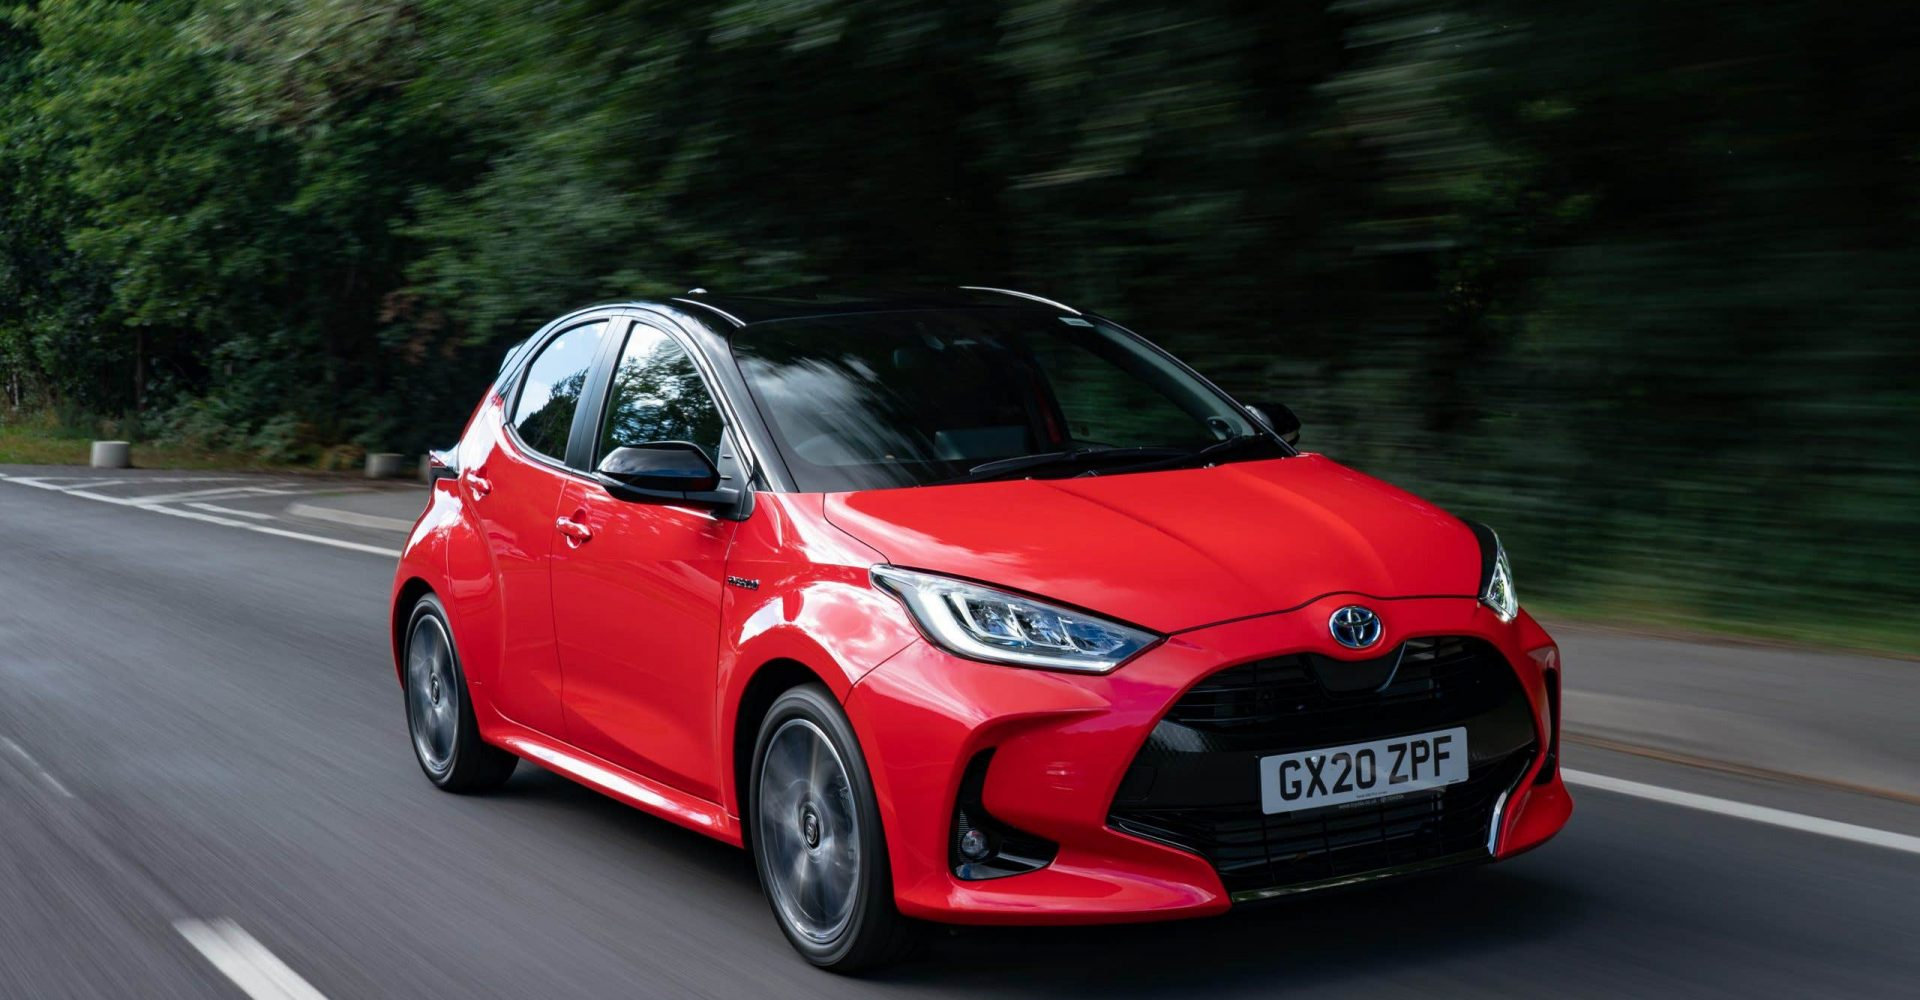 First Drive: Toyota's Yaris builds on the reputation of its predecessor